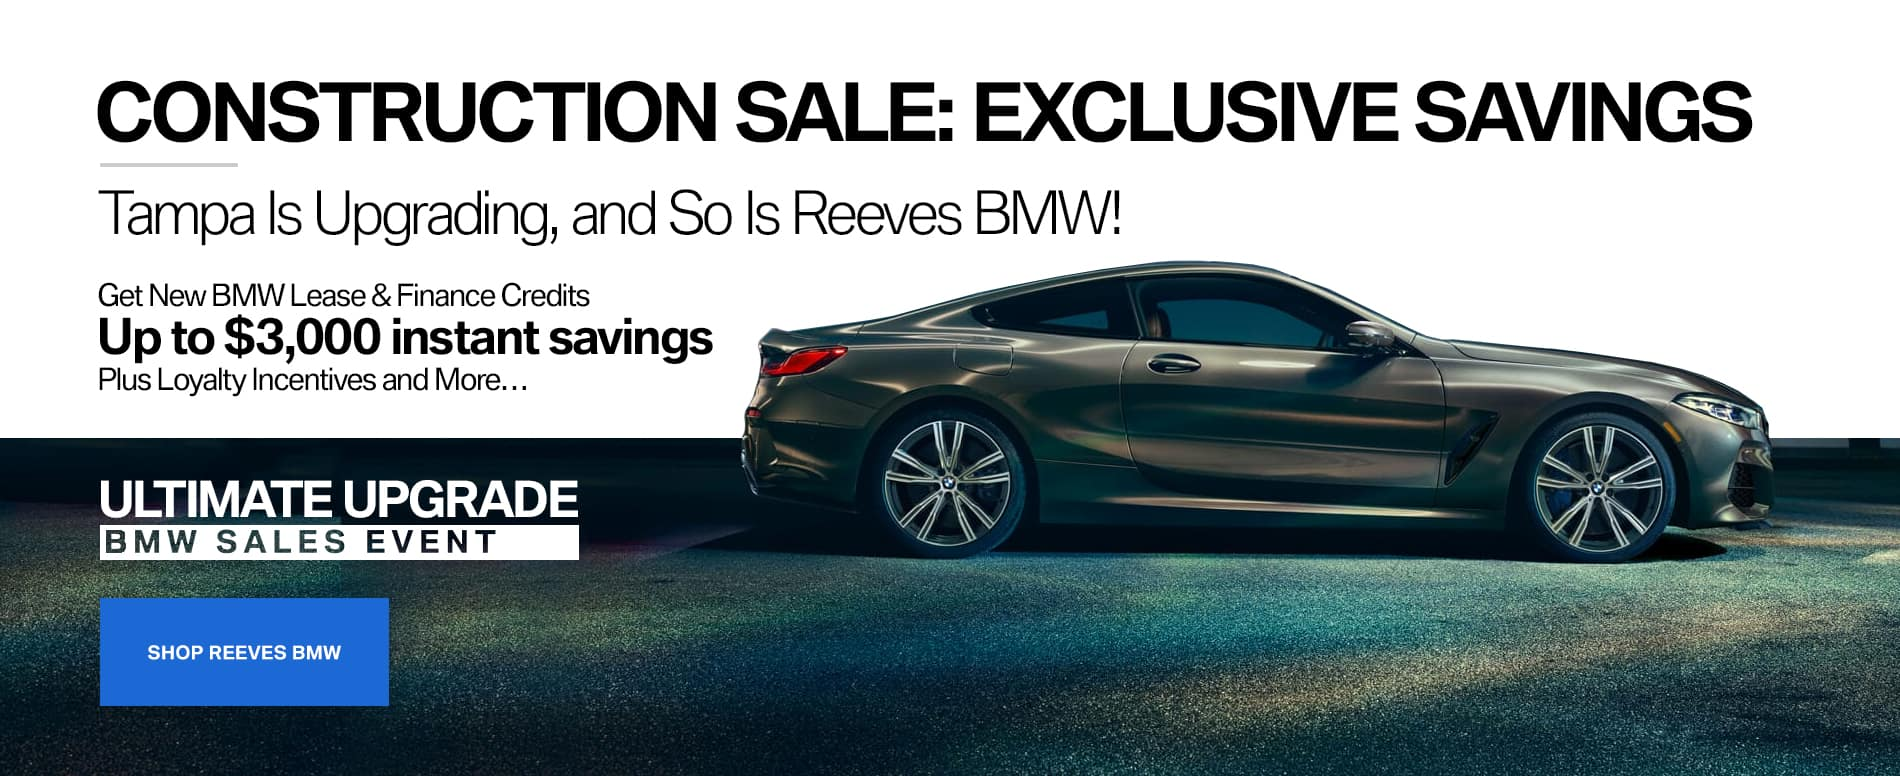 Reeves BMW Ultimate Upgrade Event